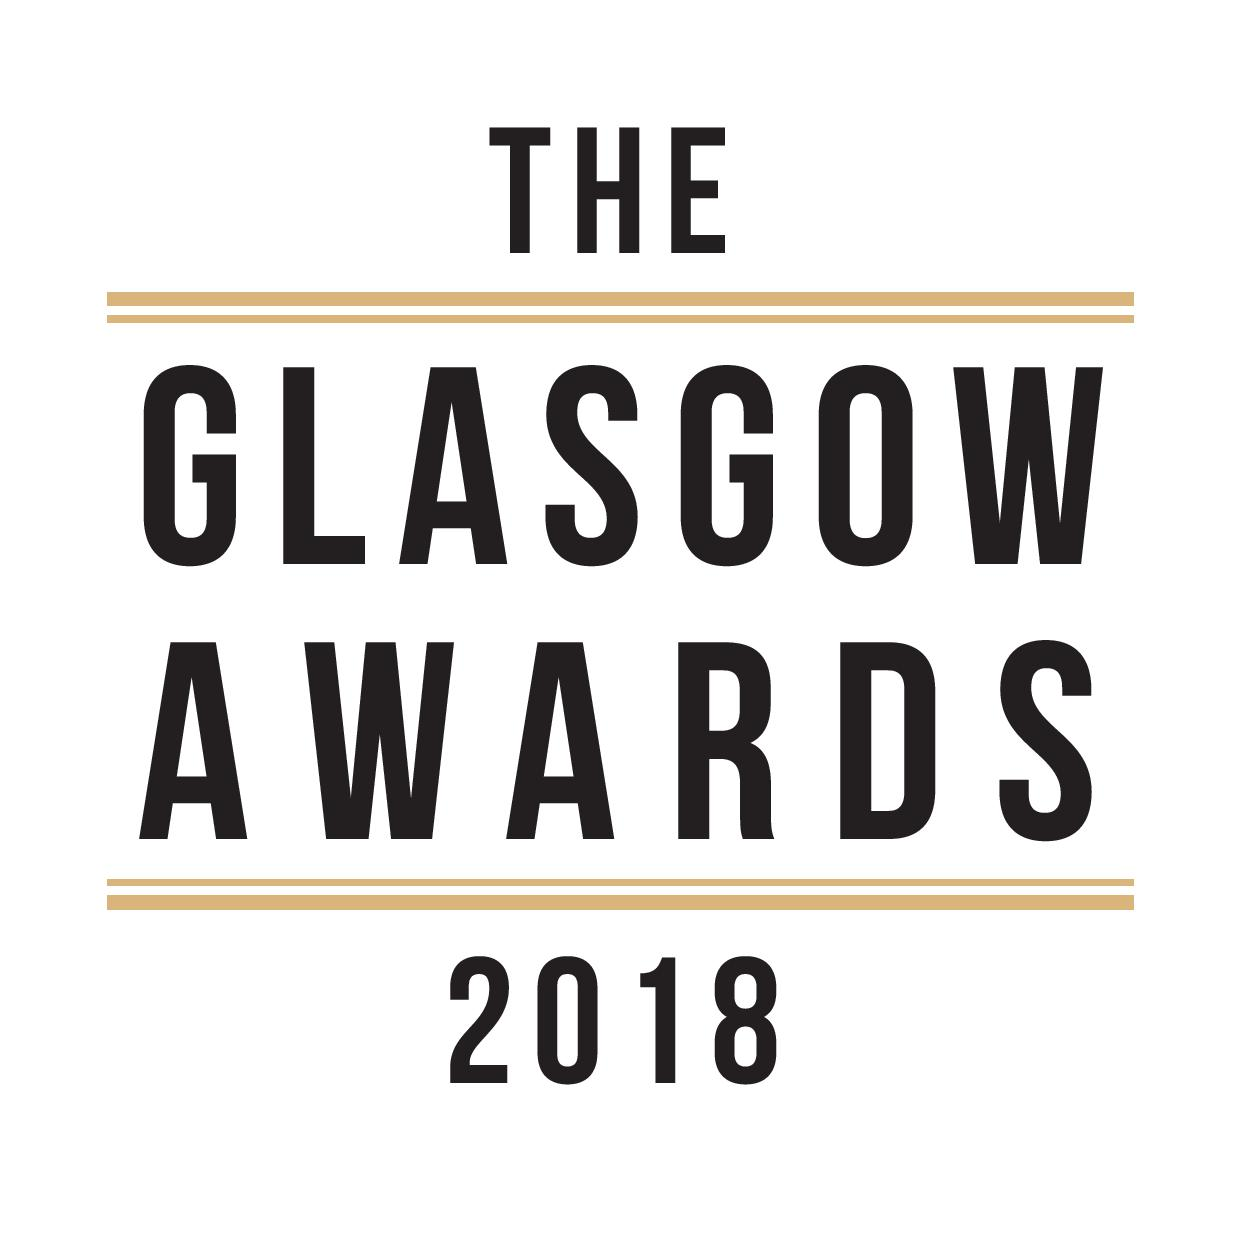 eebe5c26a The fourth Glasgow Awards 2018 welcomed 200 guests at the Crowne Plaza  Glasgow Hotel on Monday